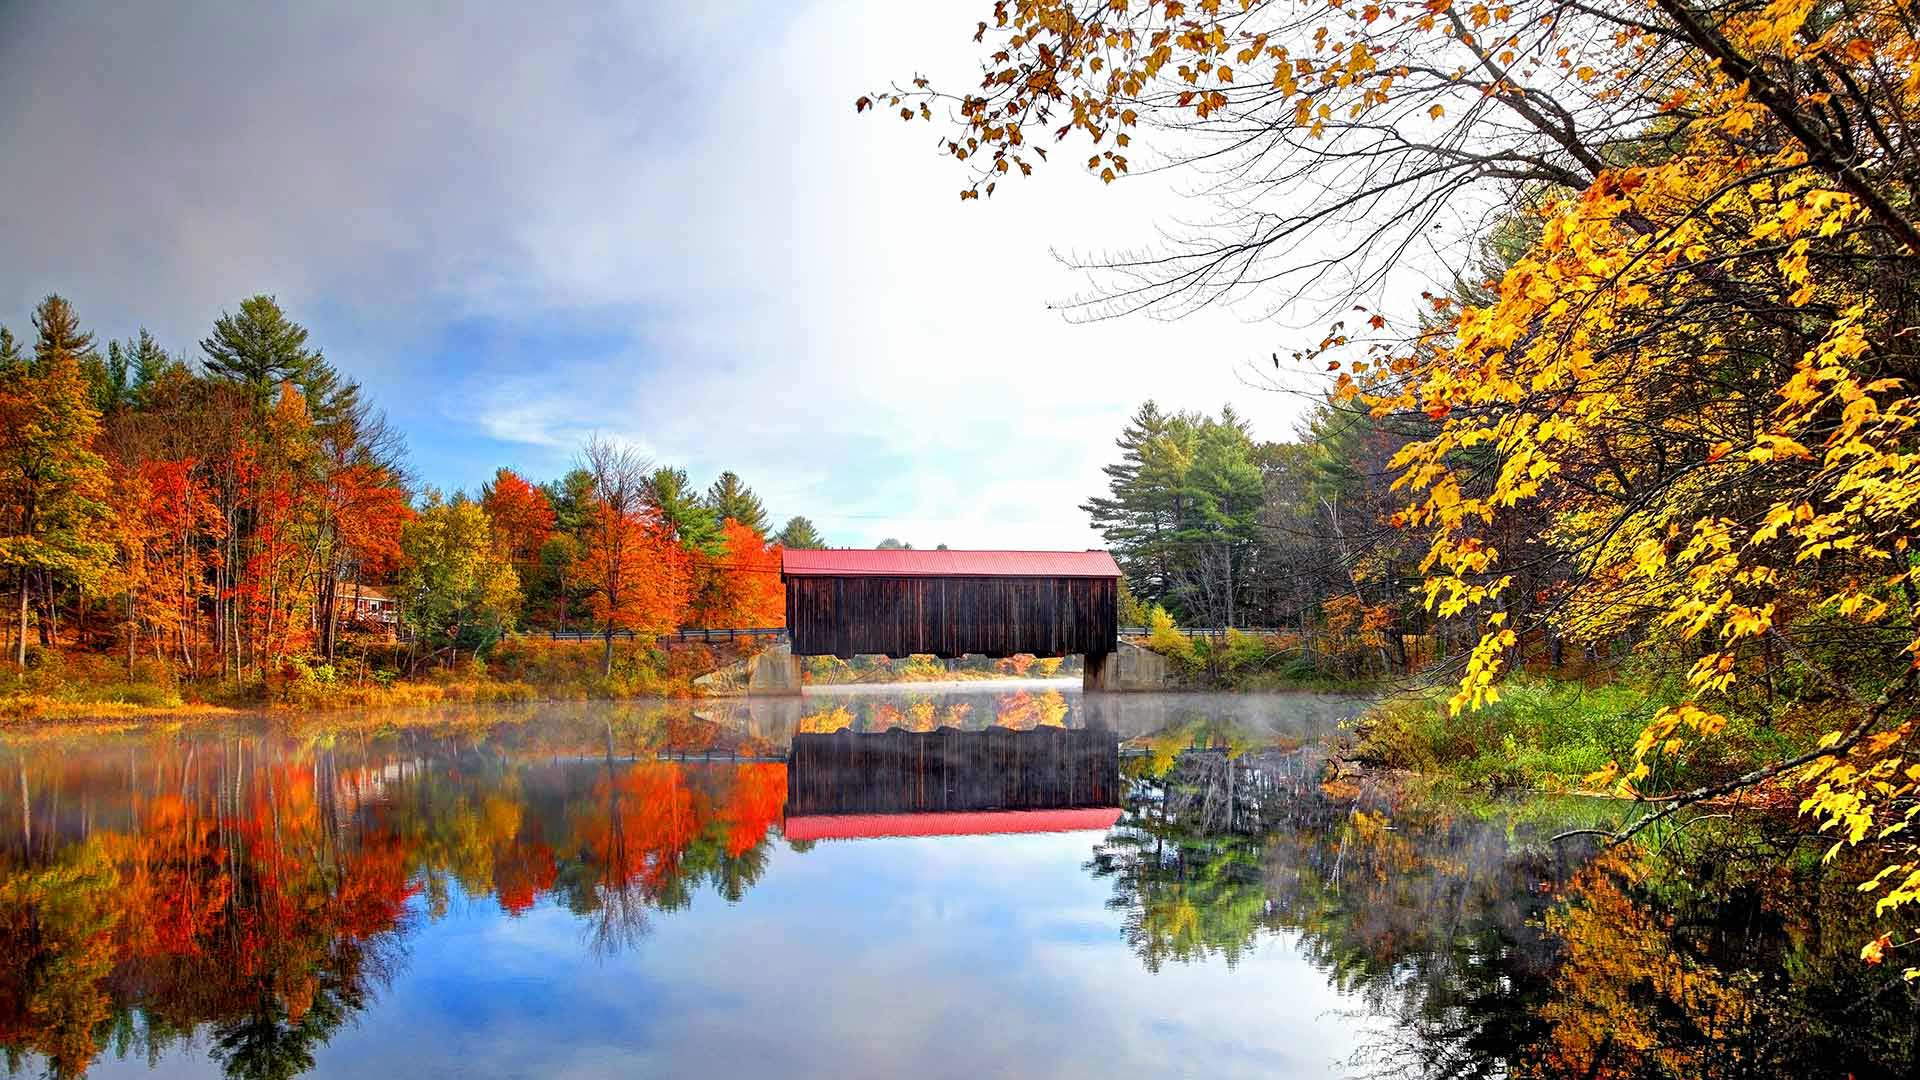 Hancock-Greenfield Bridge (aka County Bridge) in New Hampshire (© Denis Tangney Jr/E+/Getty Images)(Bing United States)